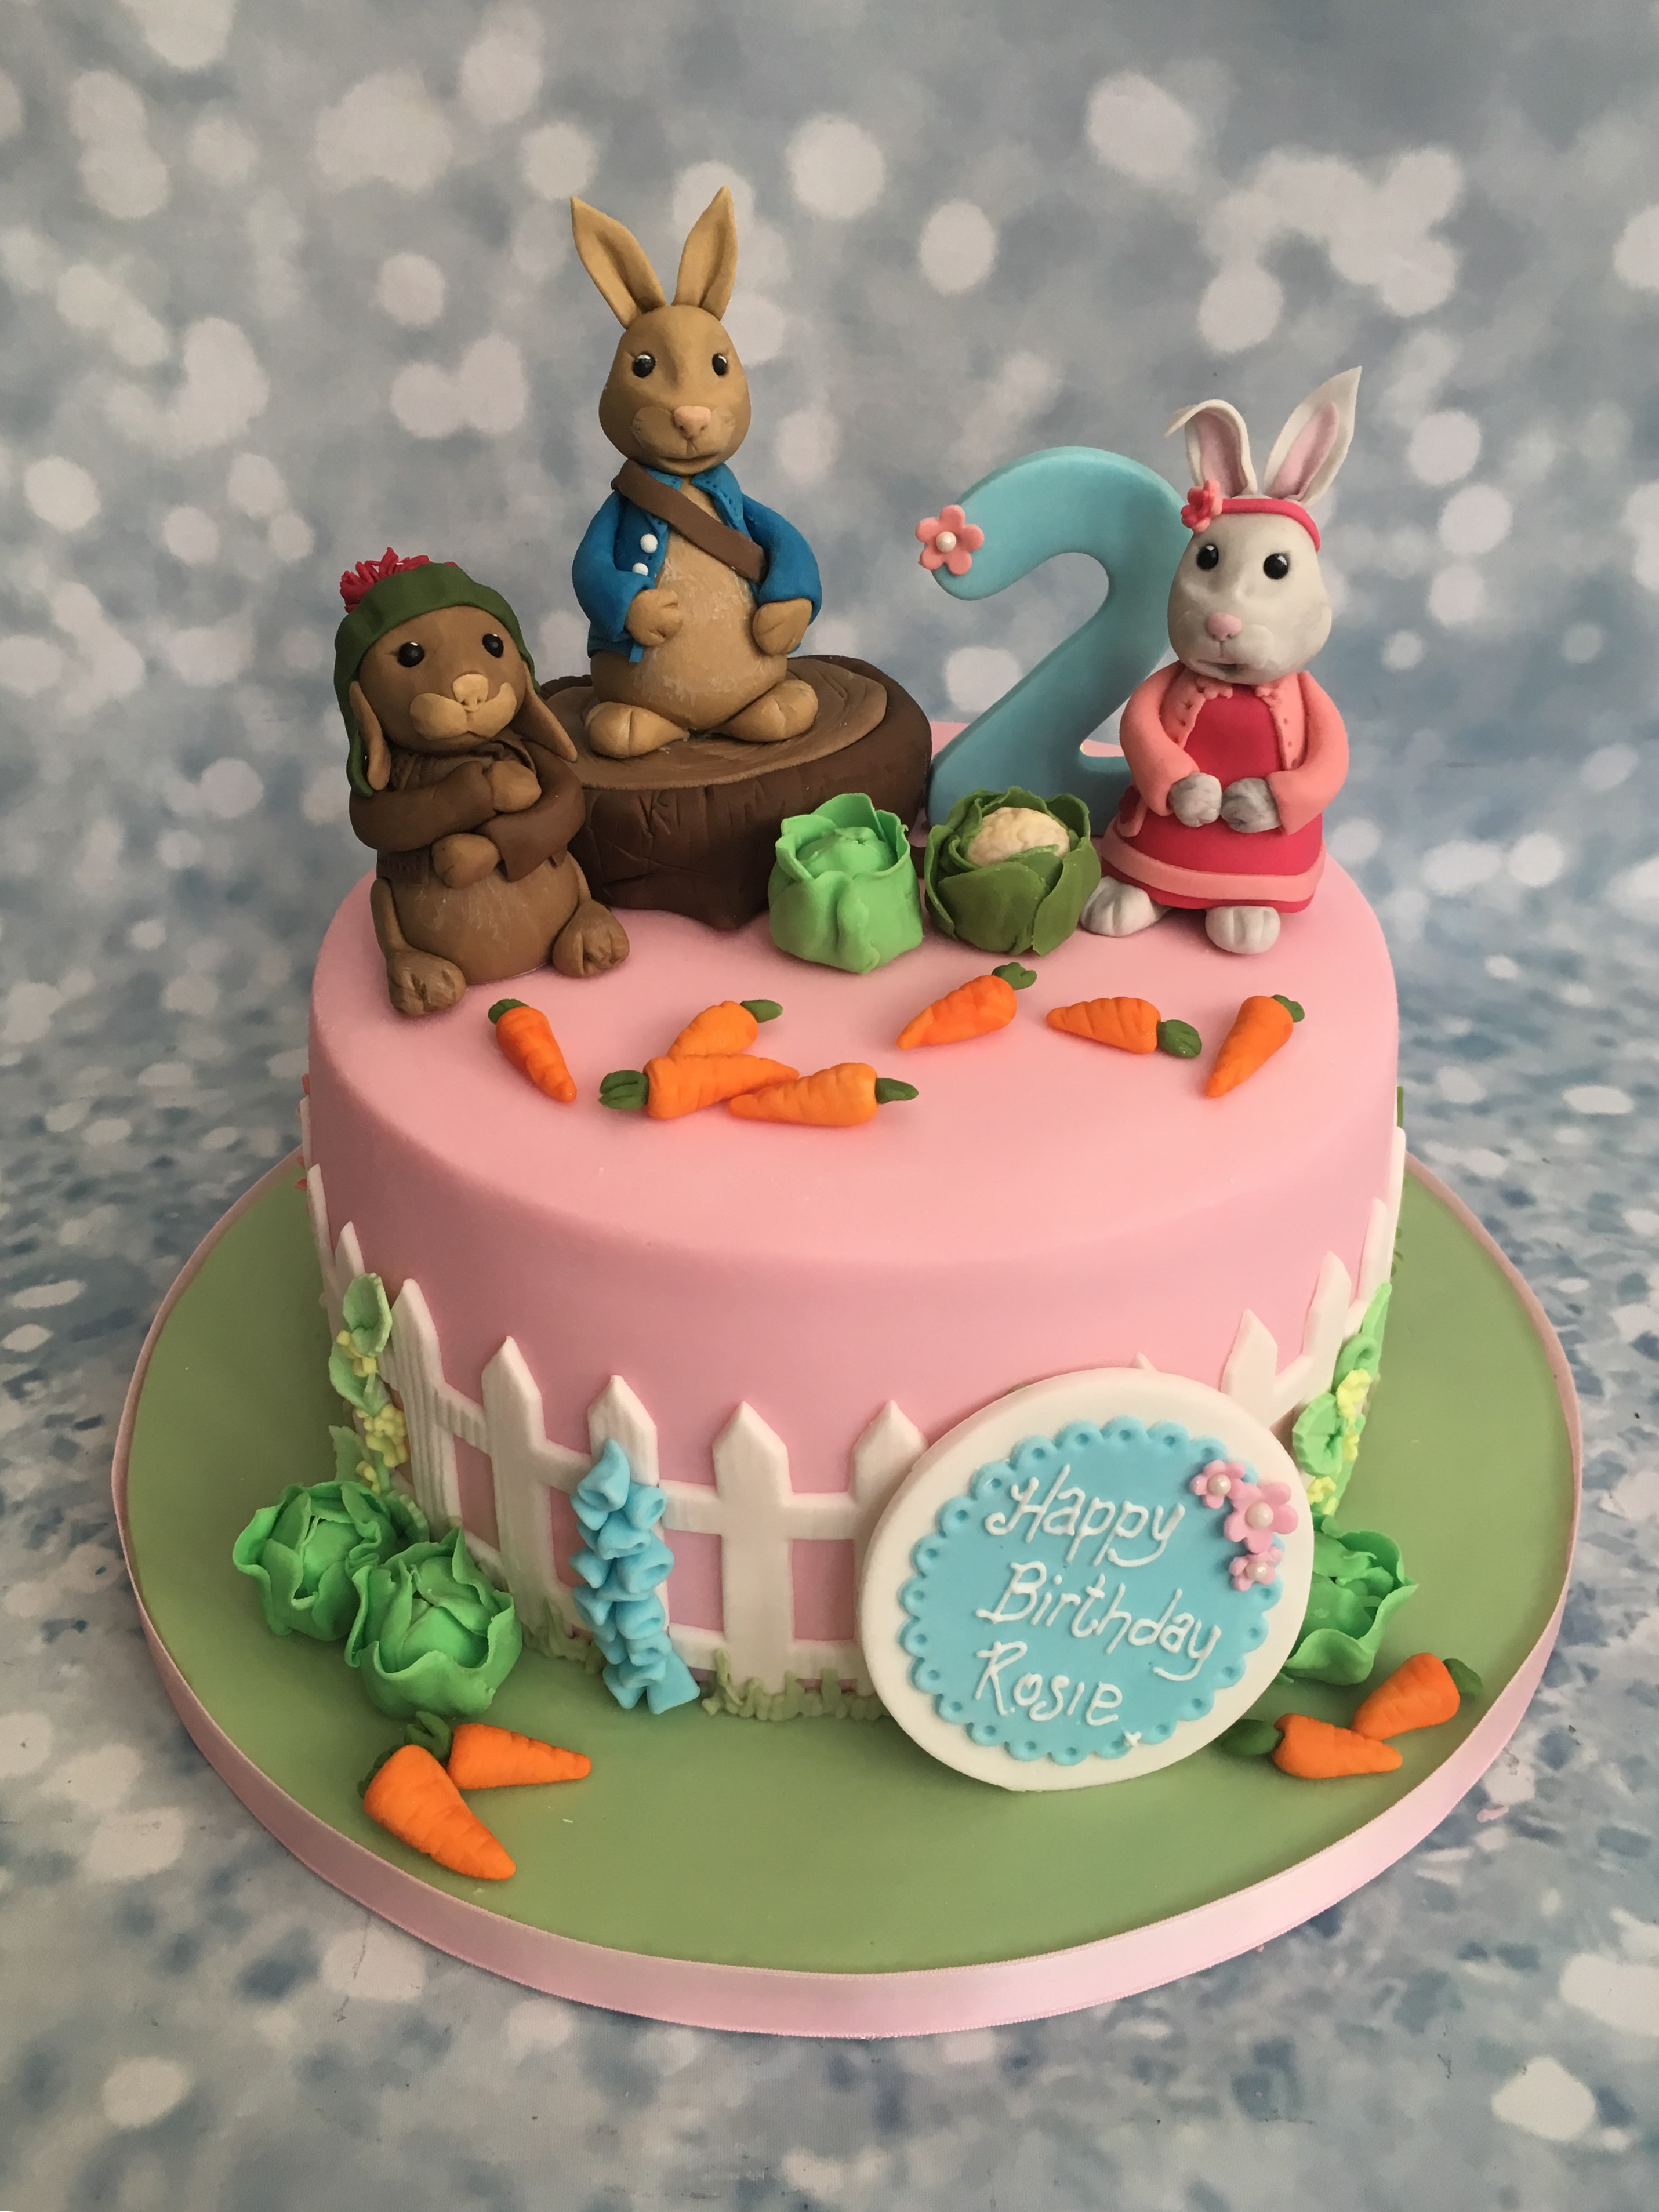 Peter Rabbit And Friends Single Tier Cake Cake Creations